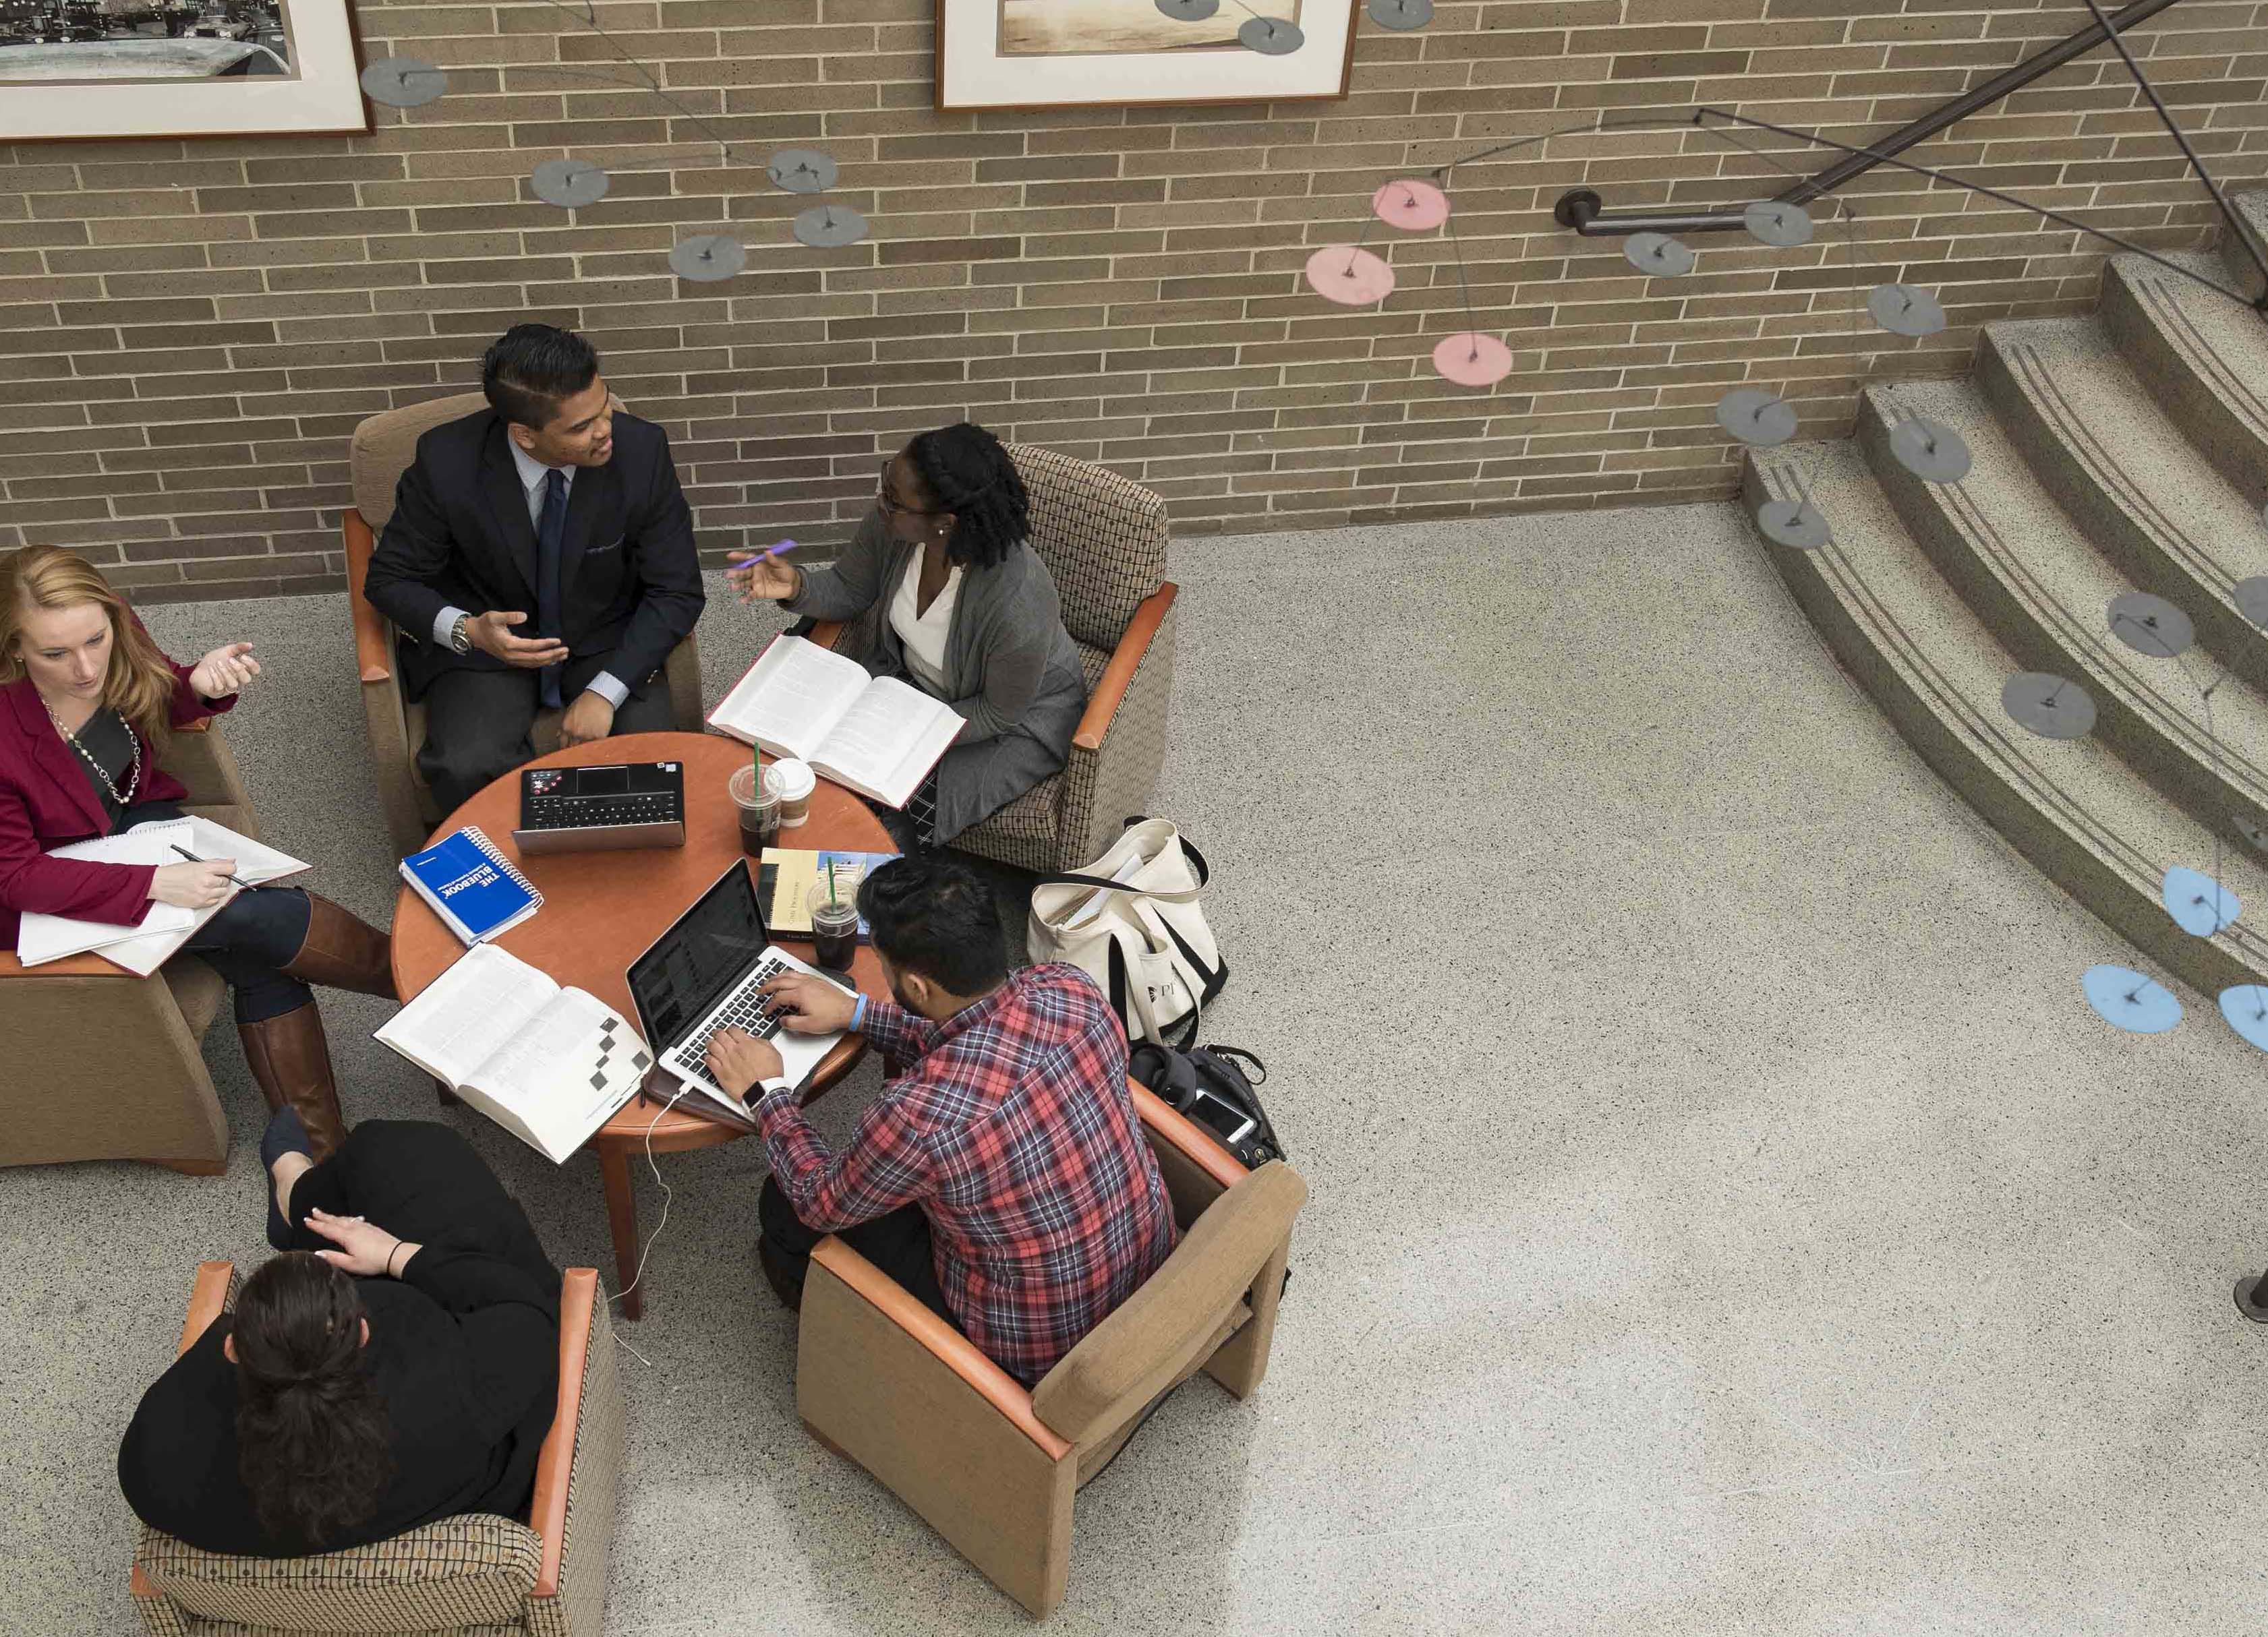 Overhead shot of students in lobby of solarium